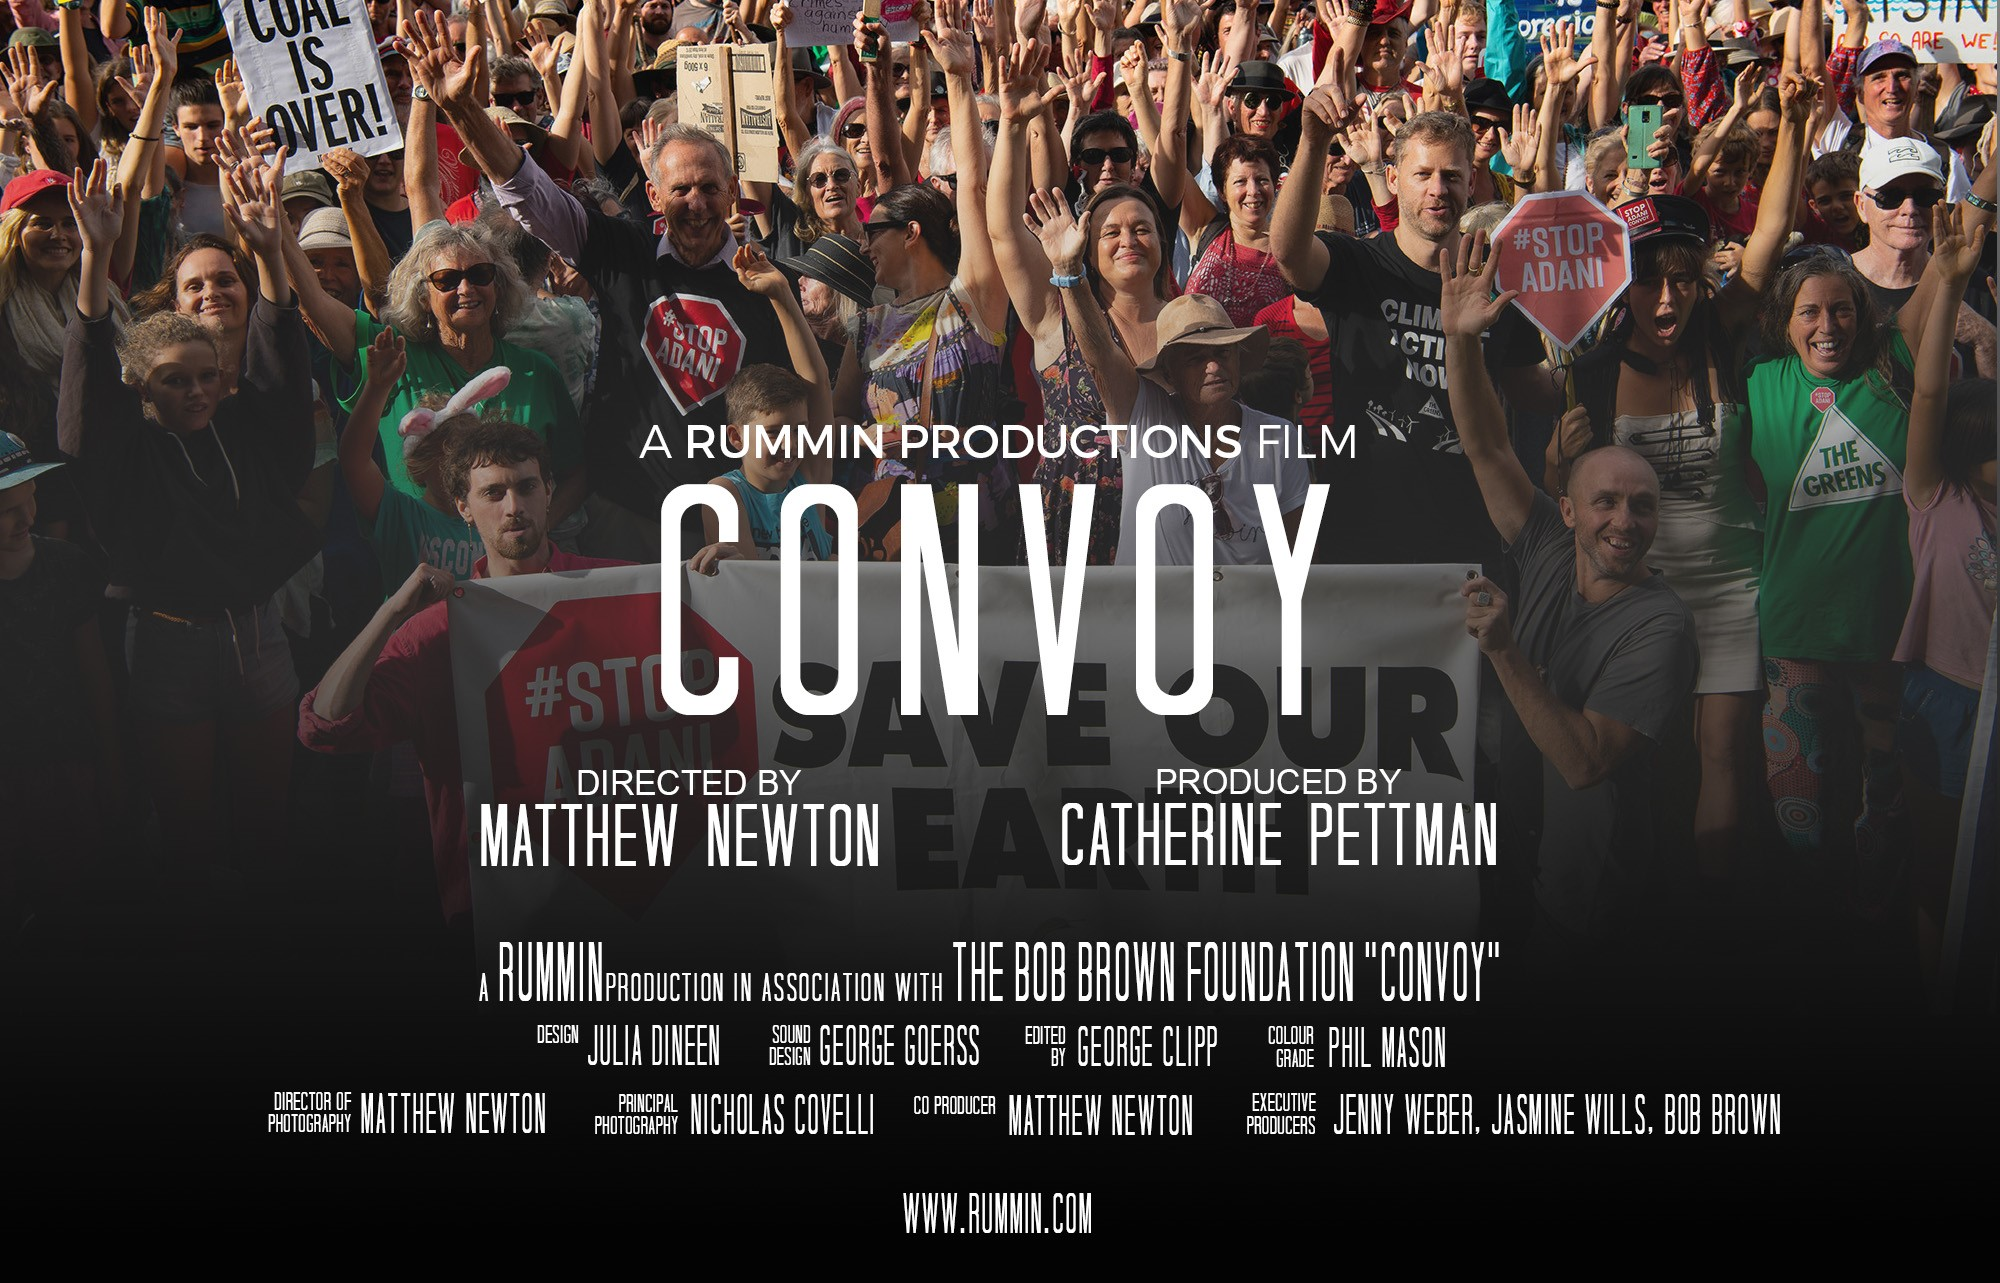 CONVOY Film by Rummin Productions